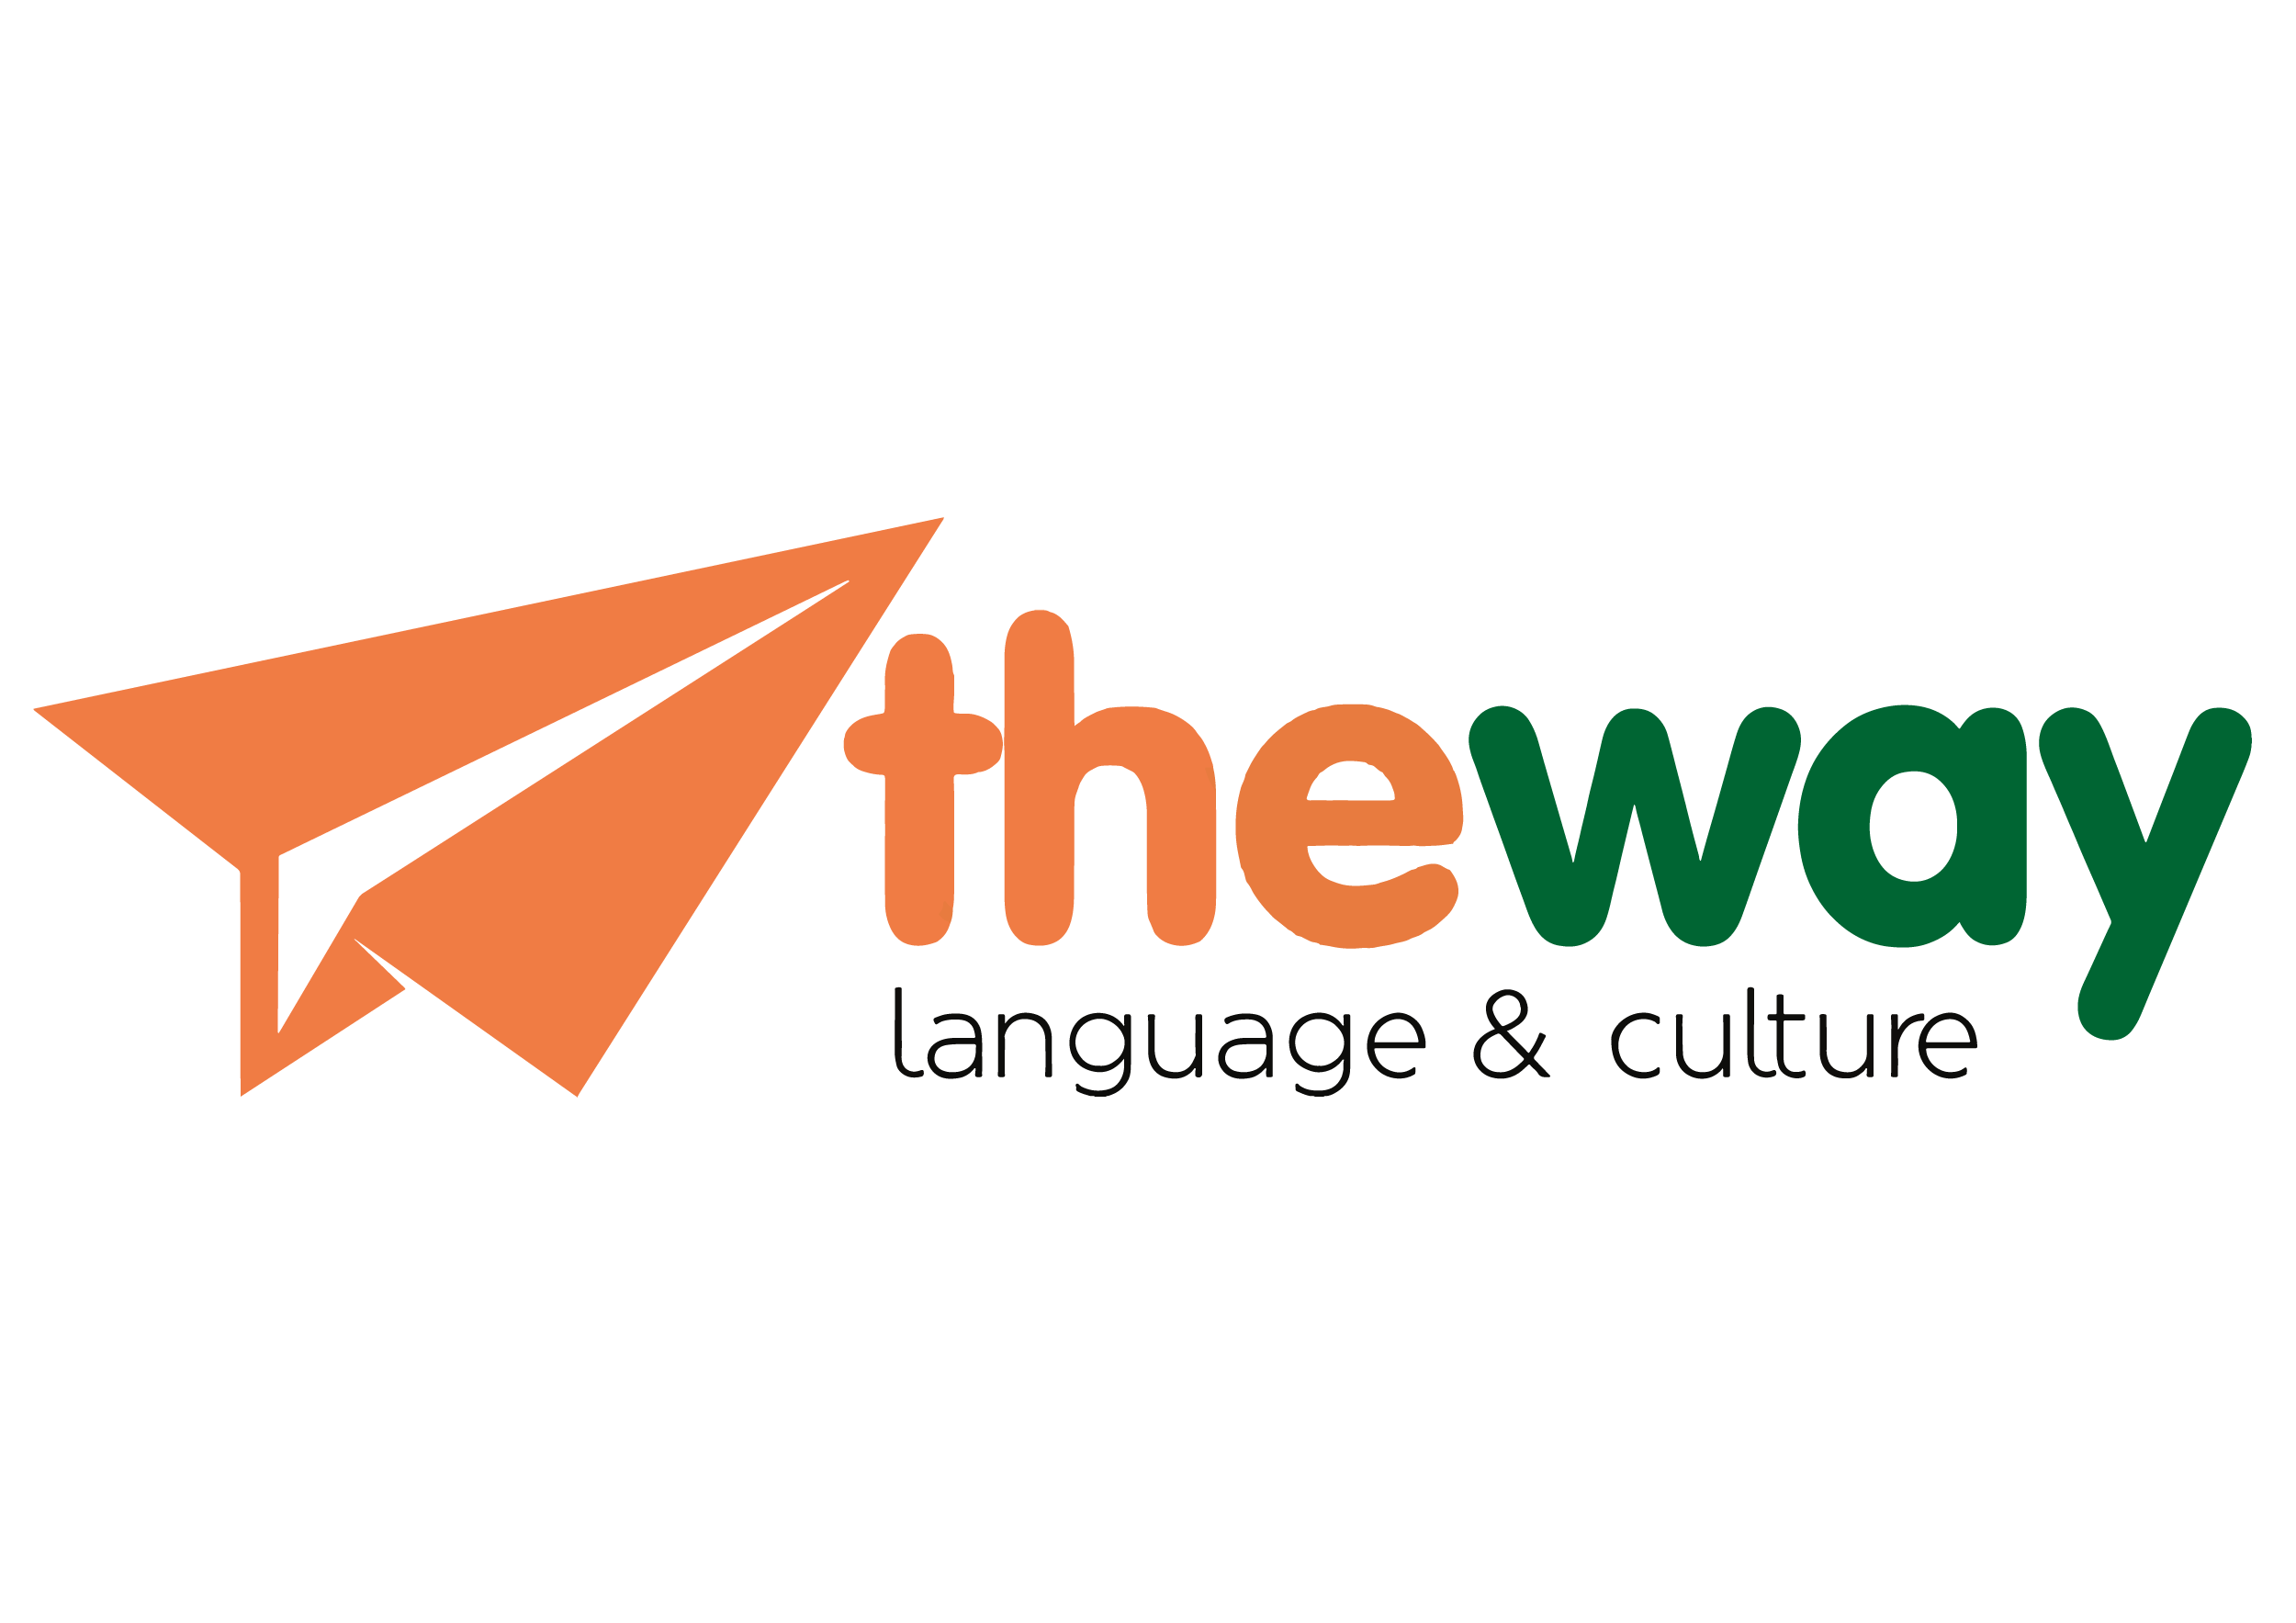 THE WAY LANGUAGE CULTURE